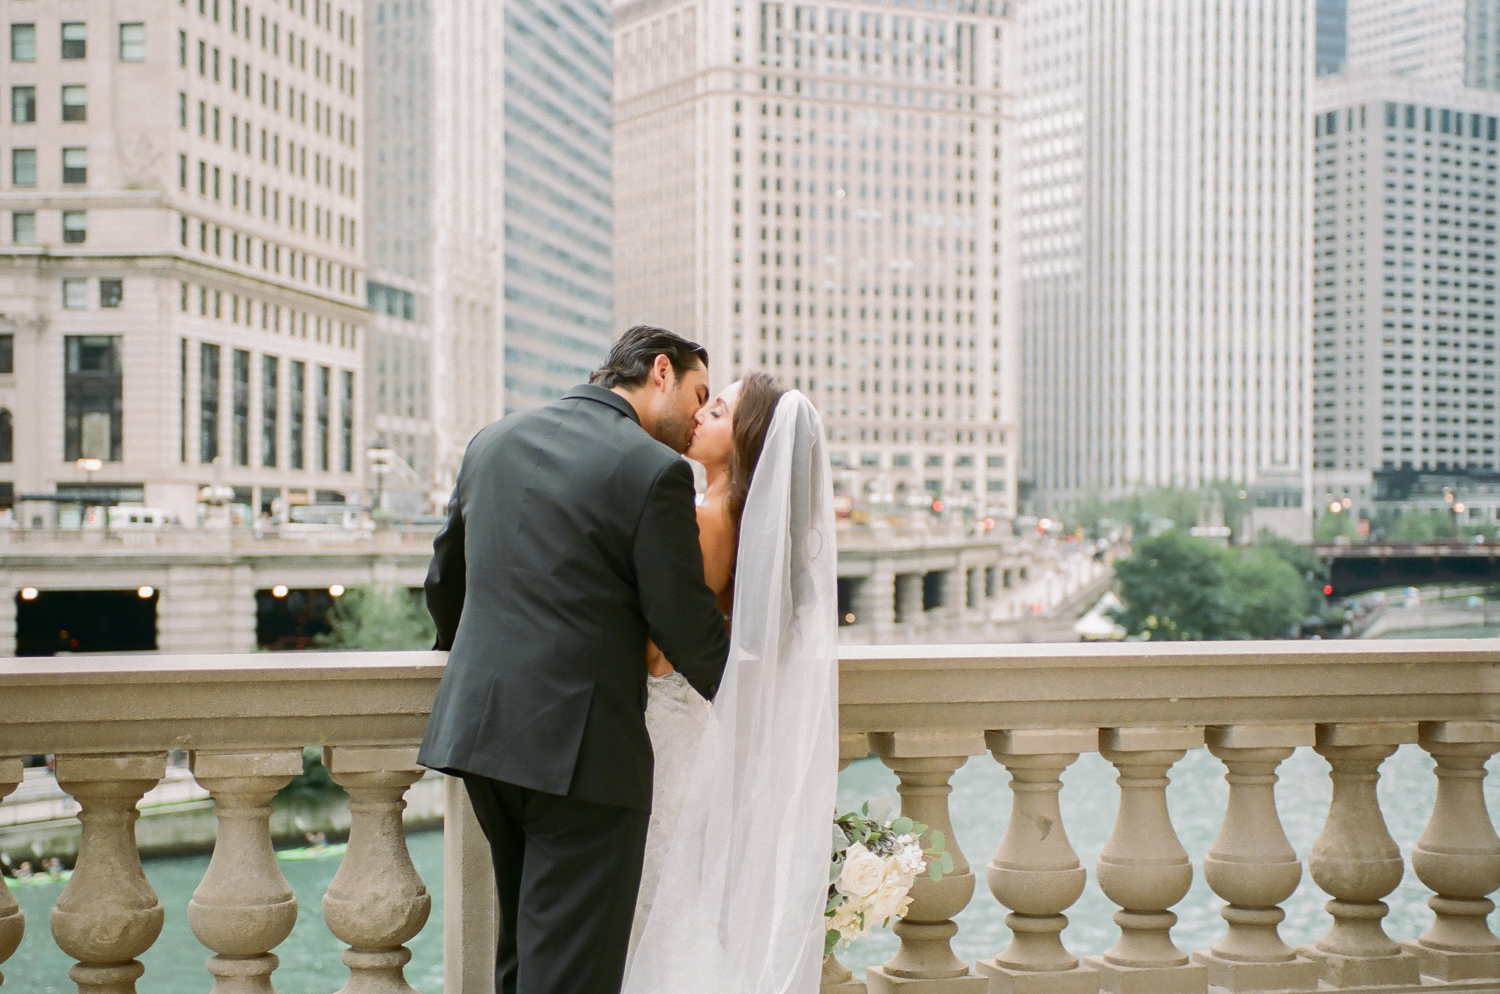 Bride and groom by Chicago canal on Michigan Avenue, Destination fine art wedding photographer Erica Robnett Photography